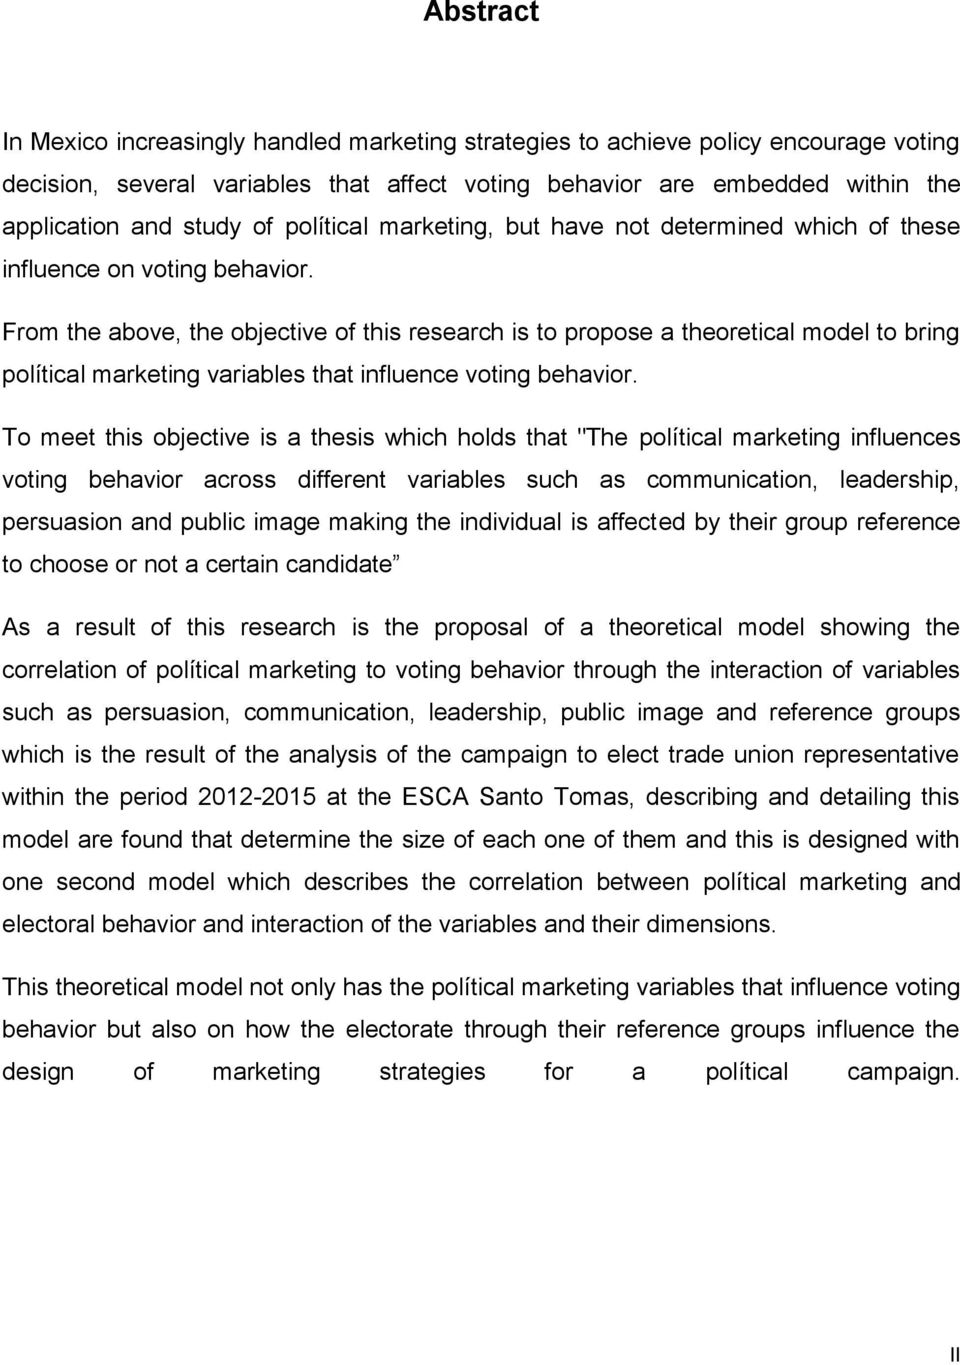 From the above, the objective of this research is to propose a theoretical model to bring polítical marketing variables that influence voting behavior.